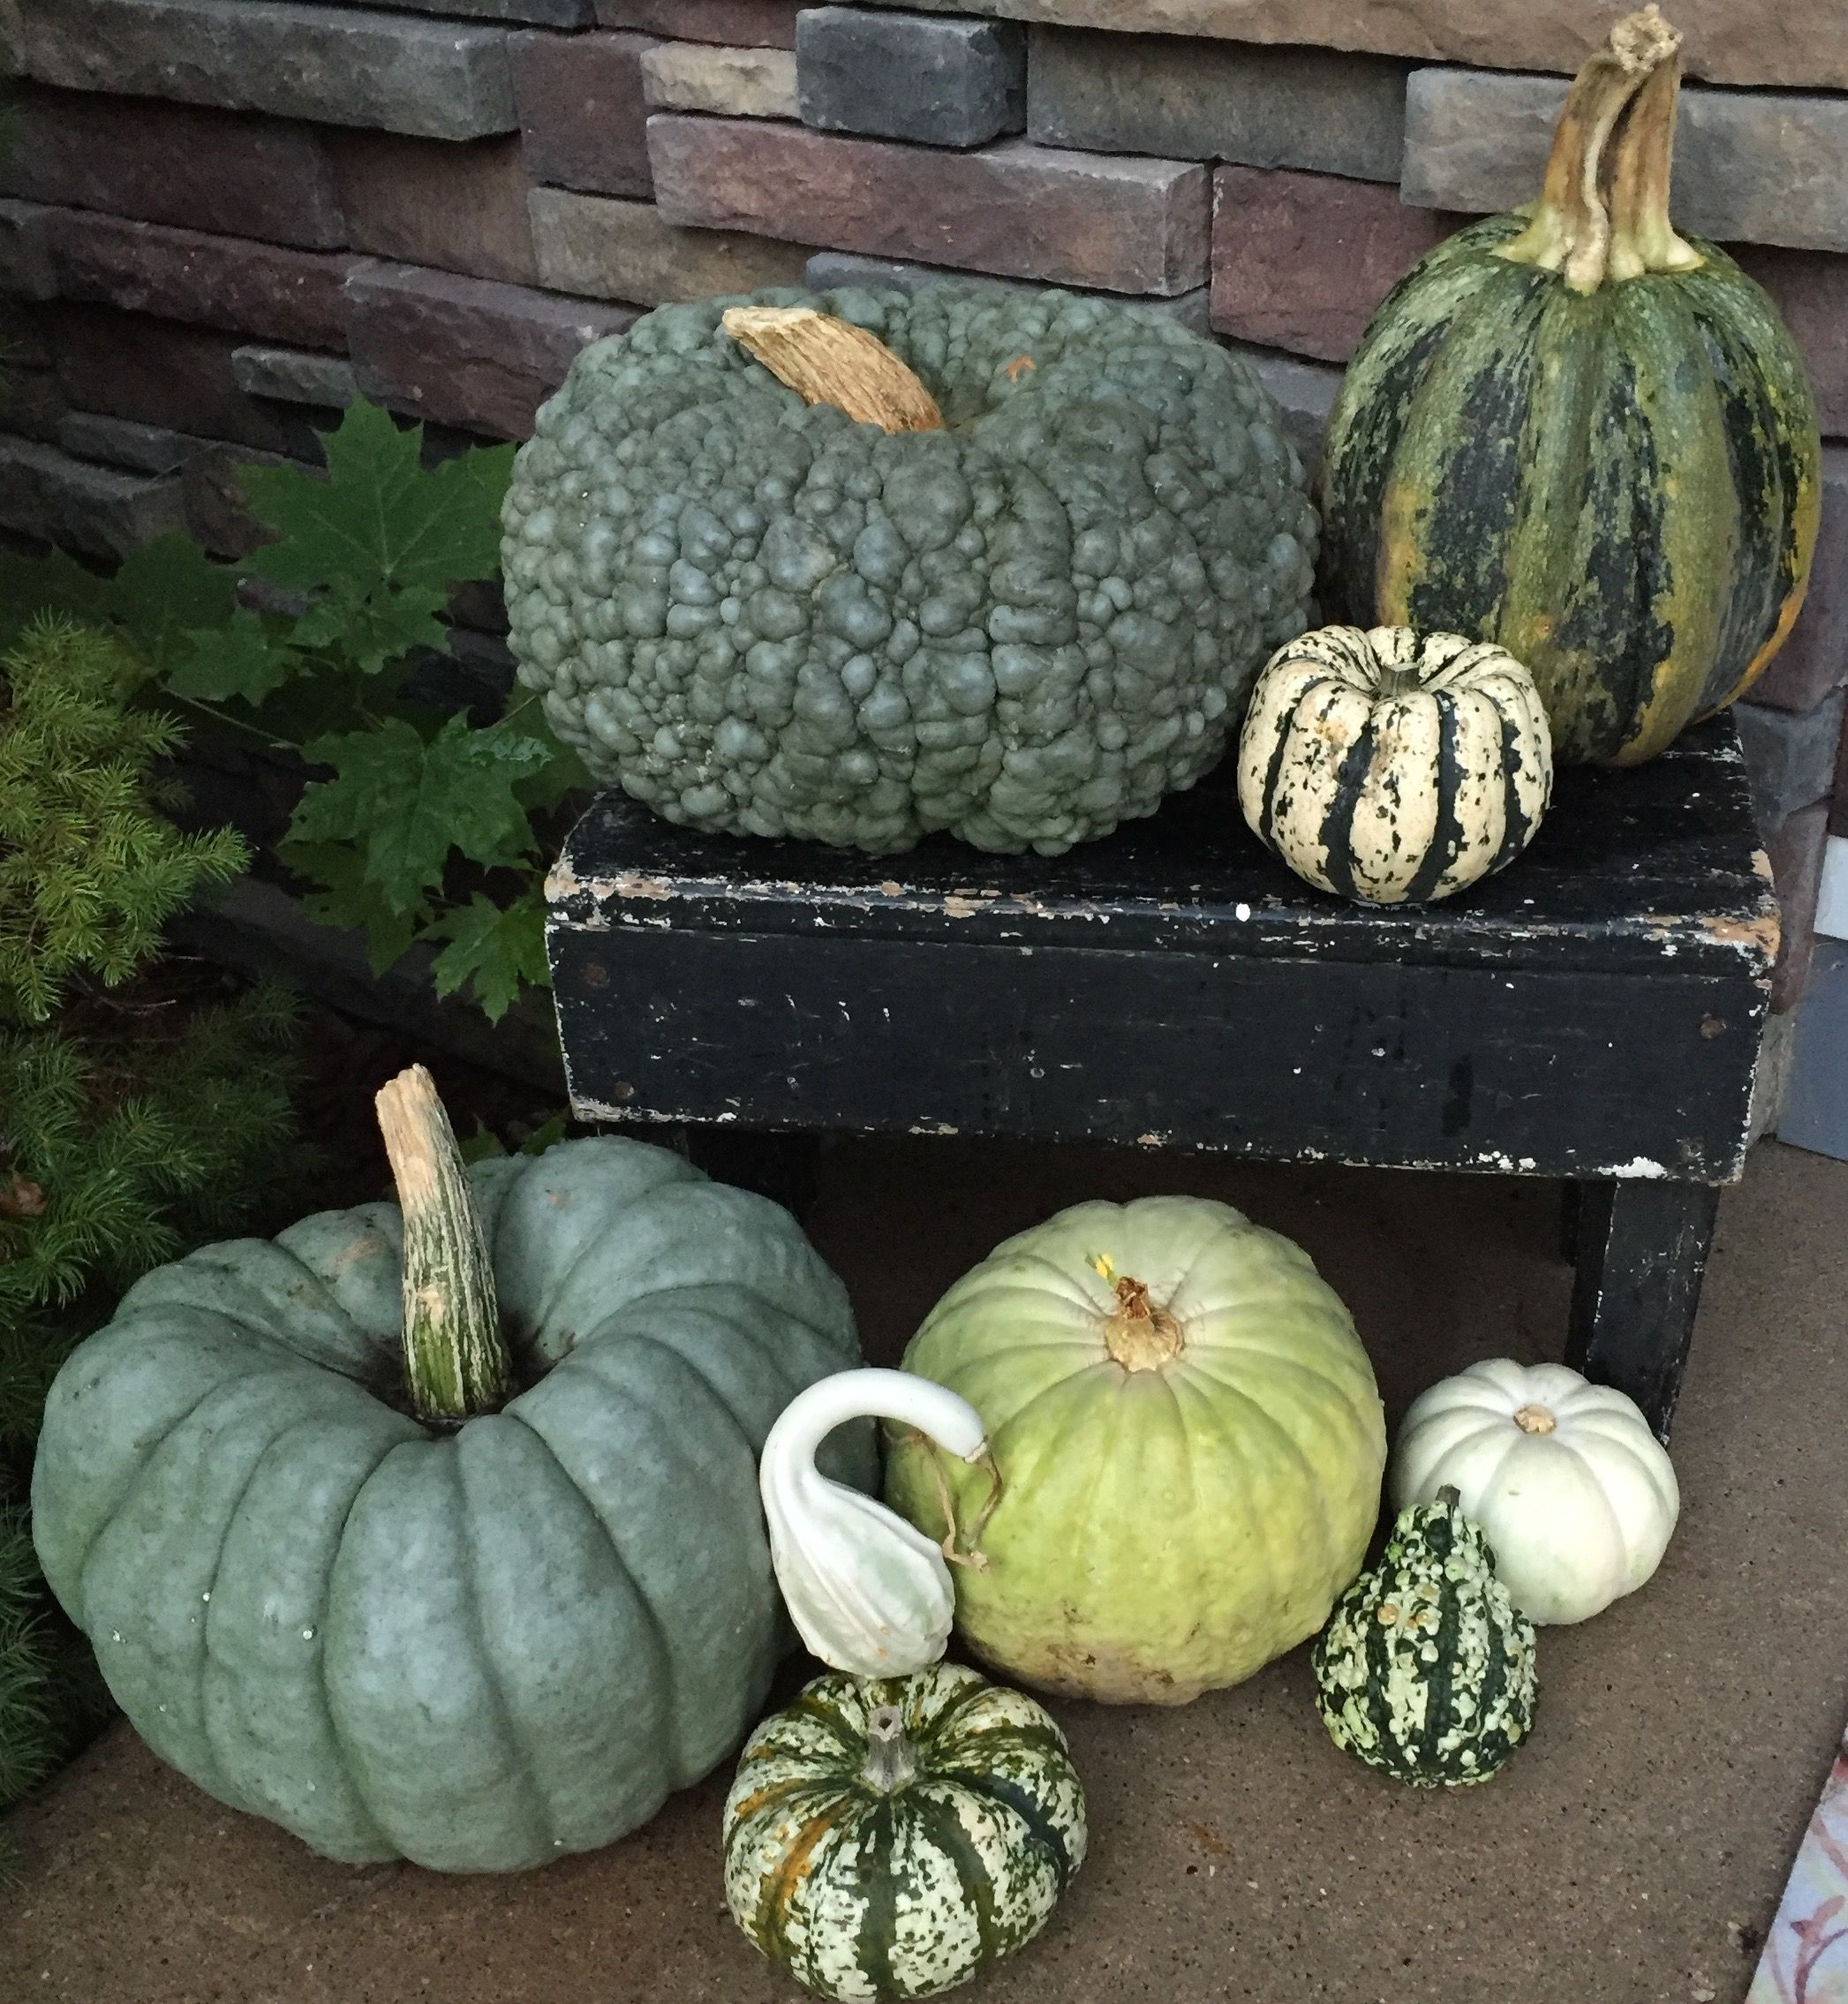 Green Pumpkins and gourds with an old antique bench